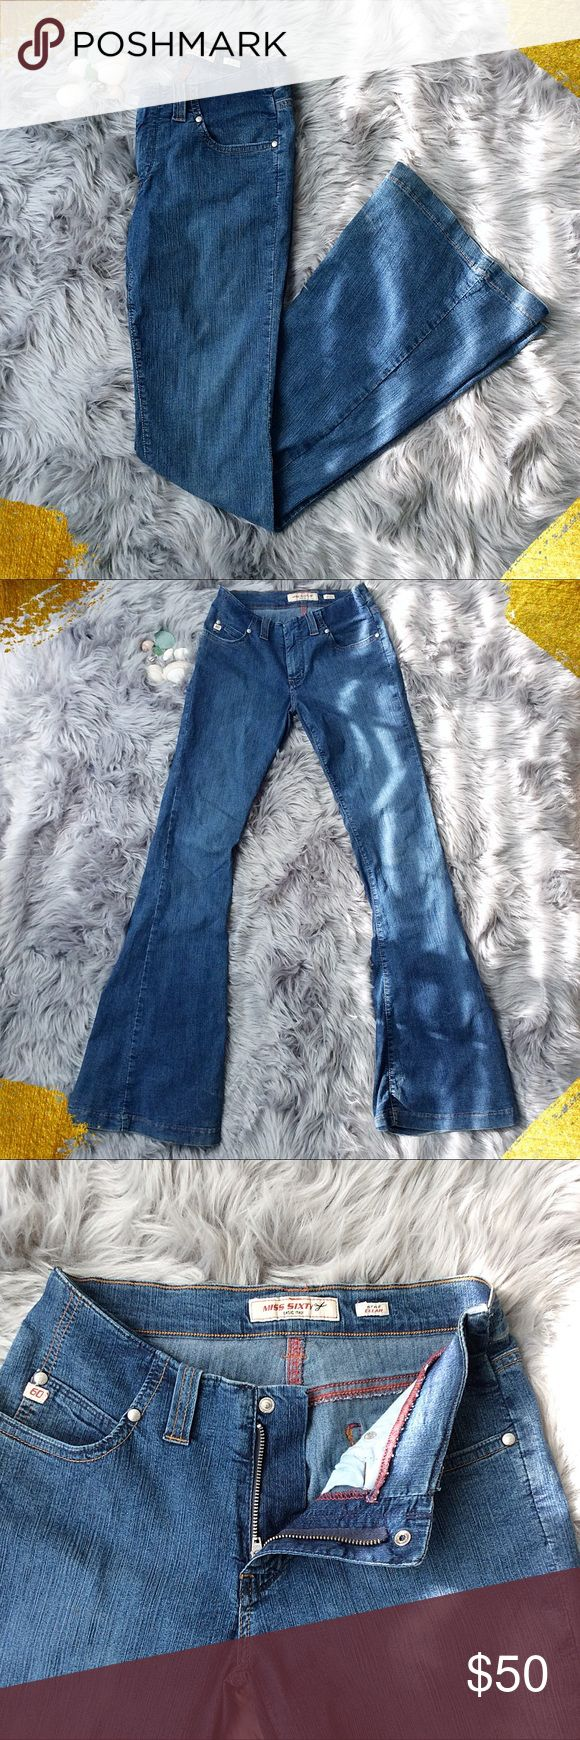 Miss Sixty Vintage Super Flare Jeans Miss Sixty Vintage Super Flare Bell Bottoms jeans!  Looks amazing with platform!!  Sizing tag is missing but measurements are included in the photos.  The fabric has a lot of stretch to it!  In fantastic condition! Miss Sixty Jeans